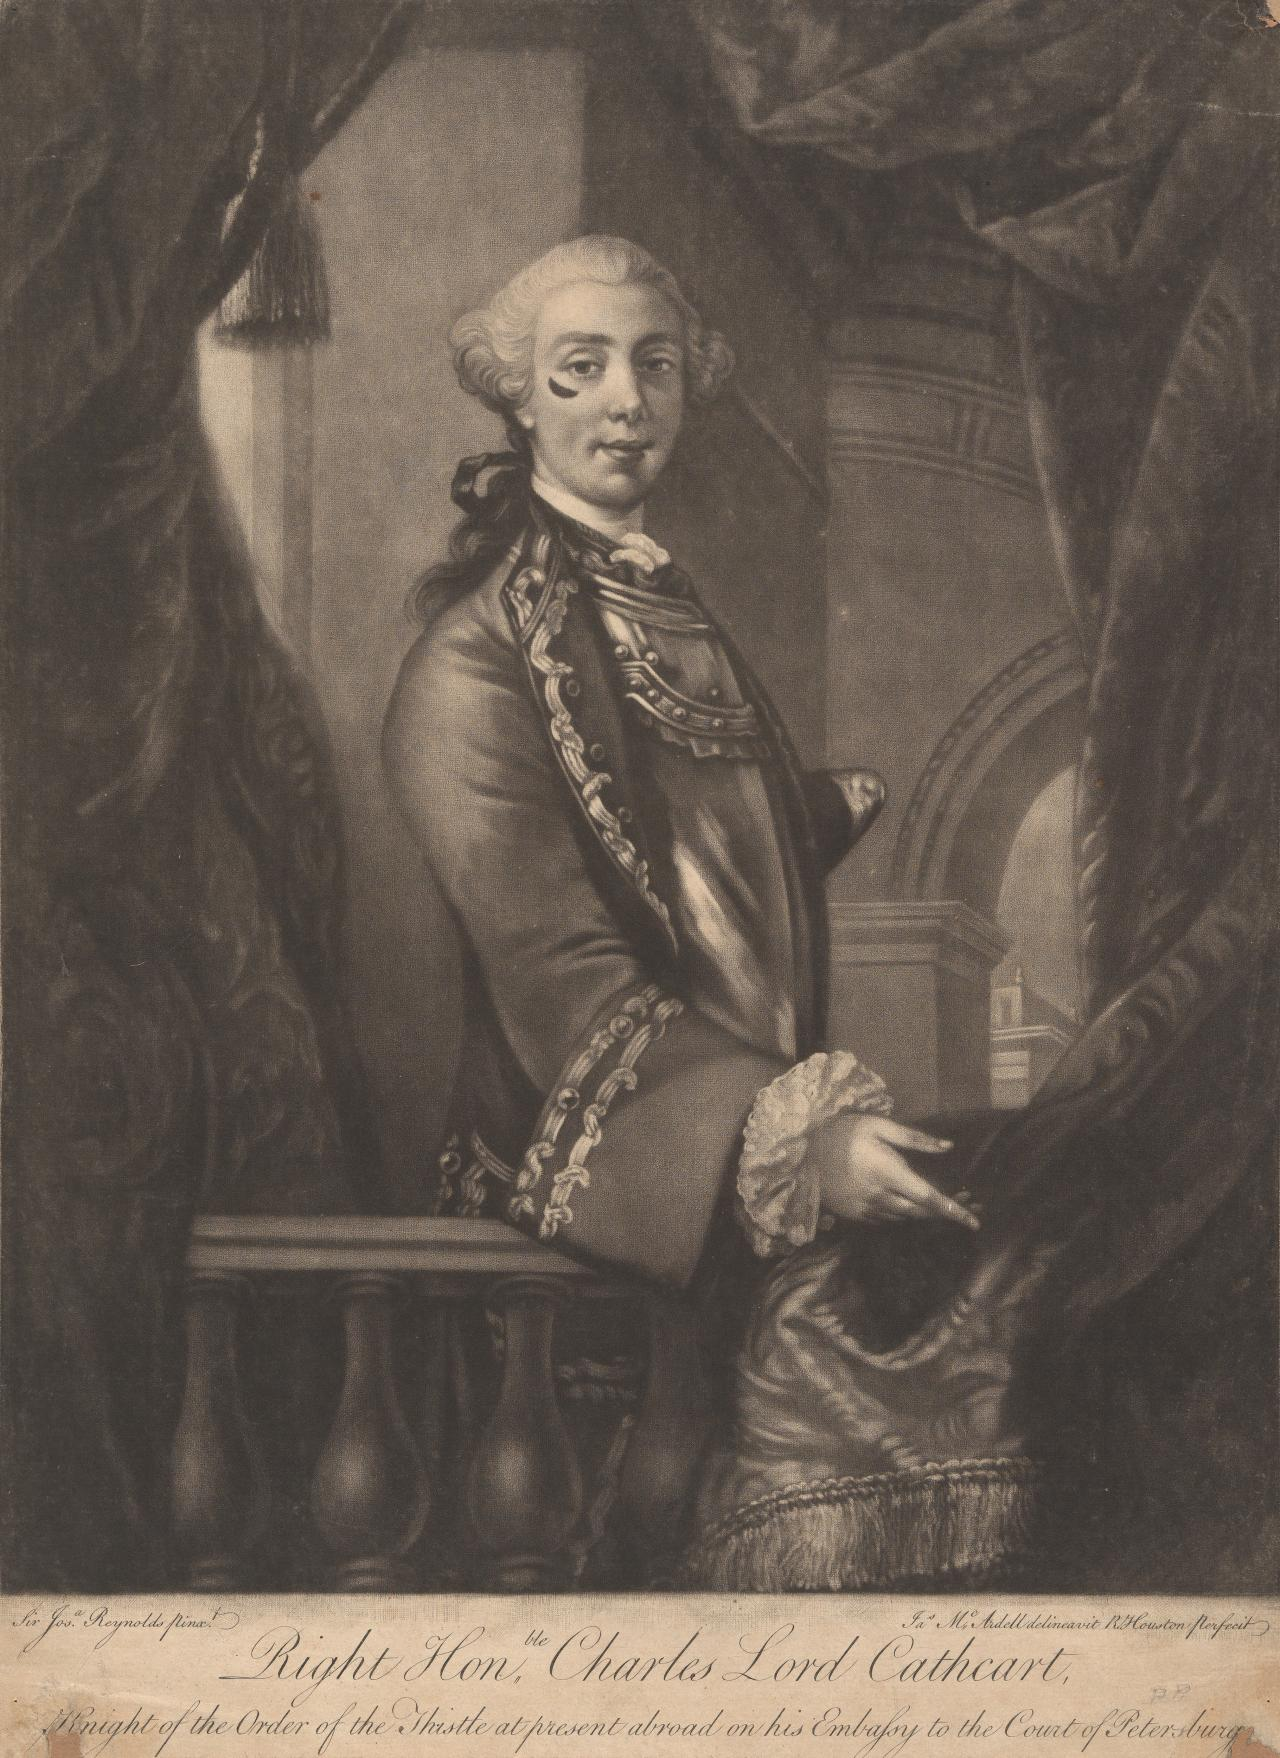 Right Honorable Charles, Lord Cathcart